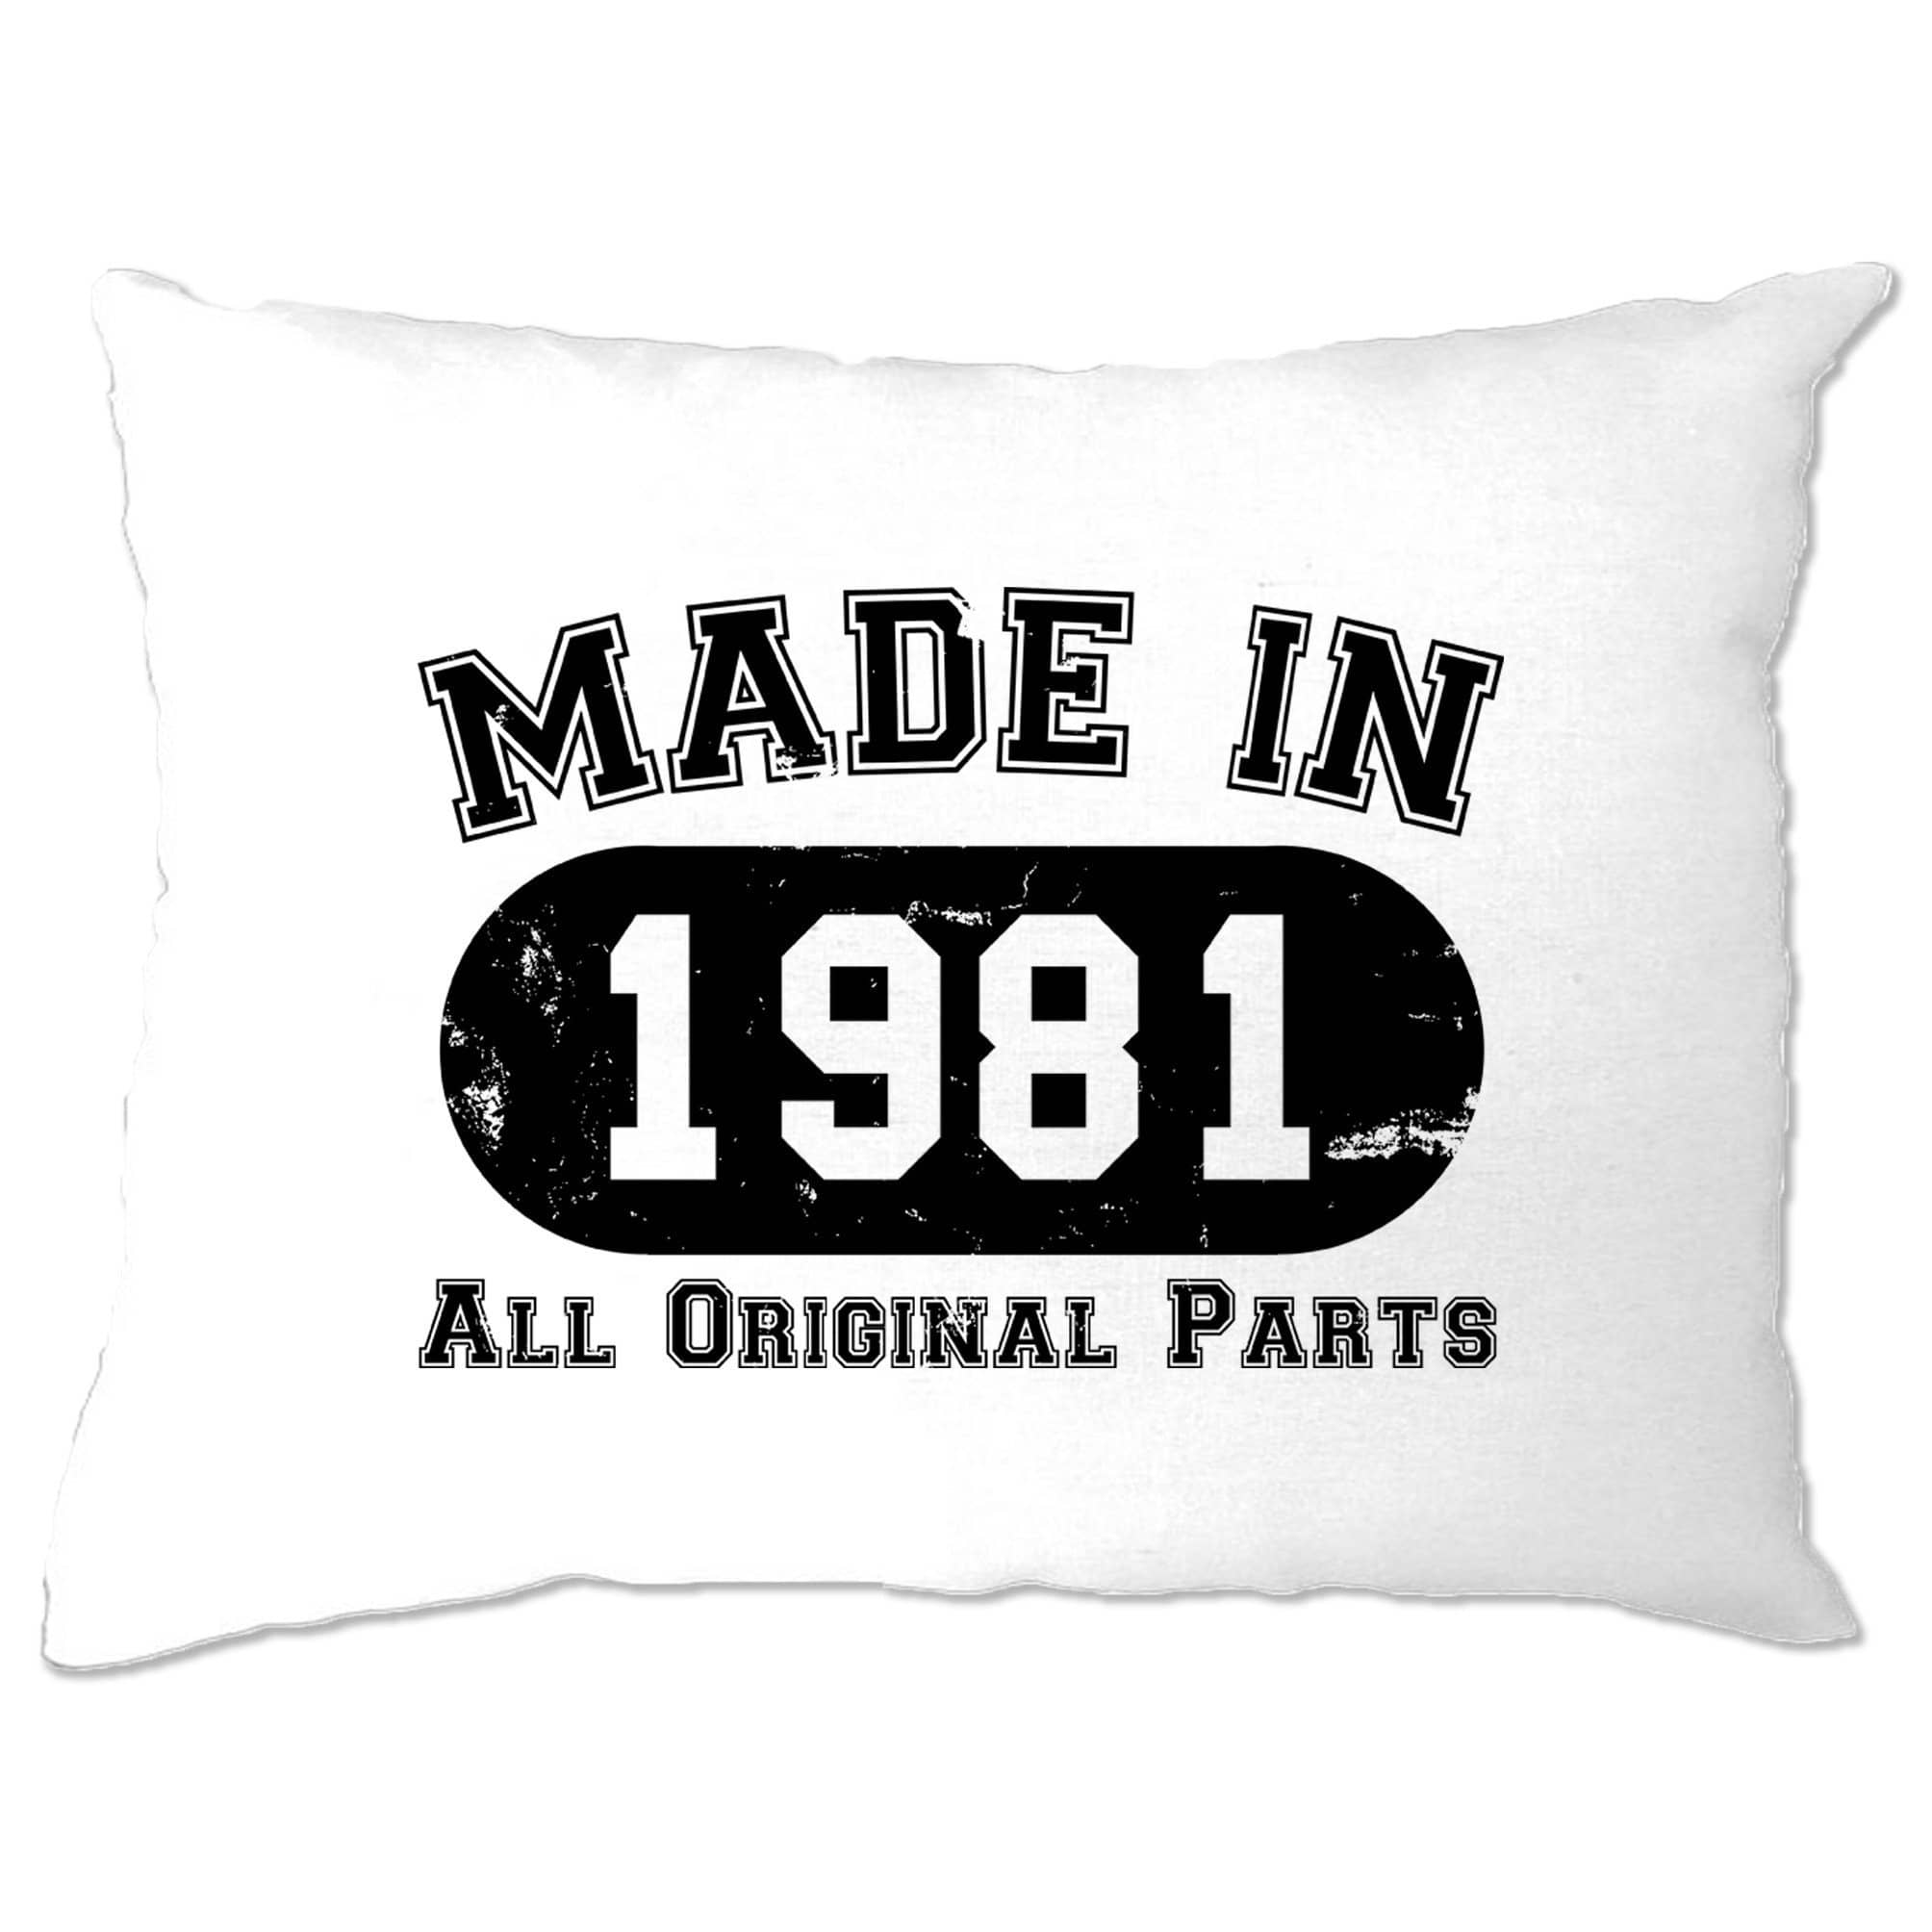 Made in 1981 All Original Parts Pillow Case [Distressed]